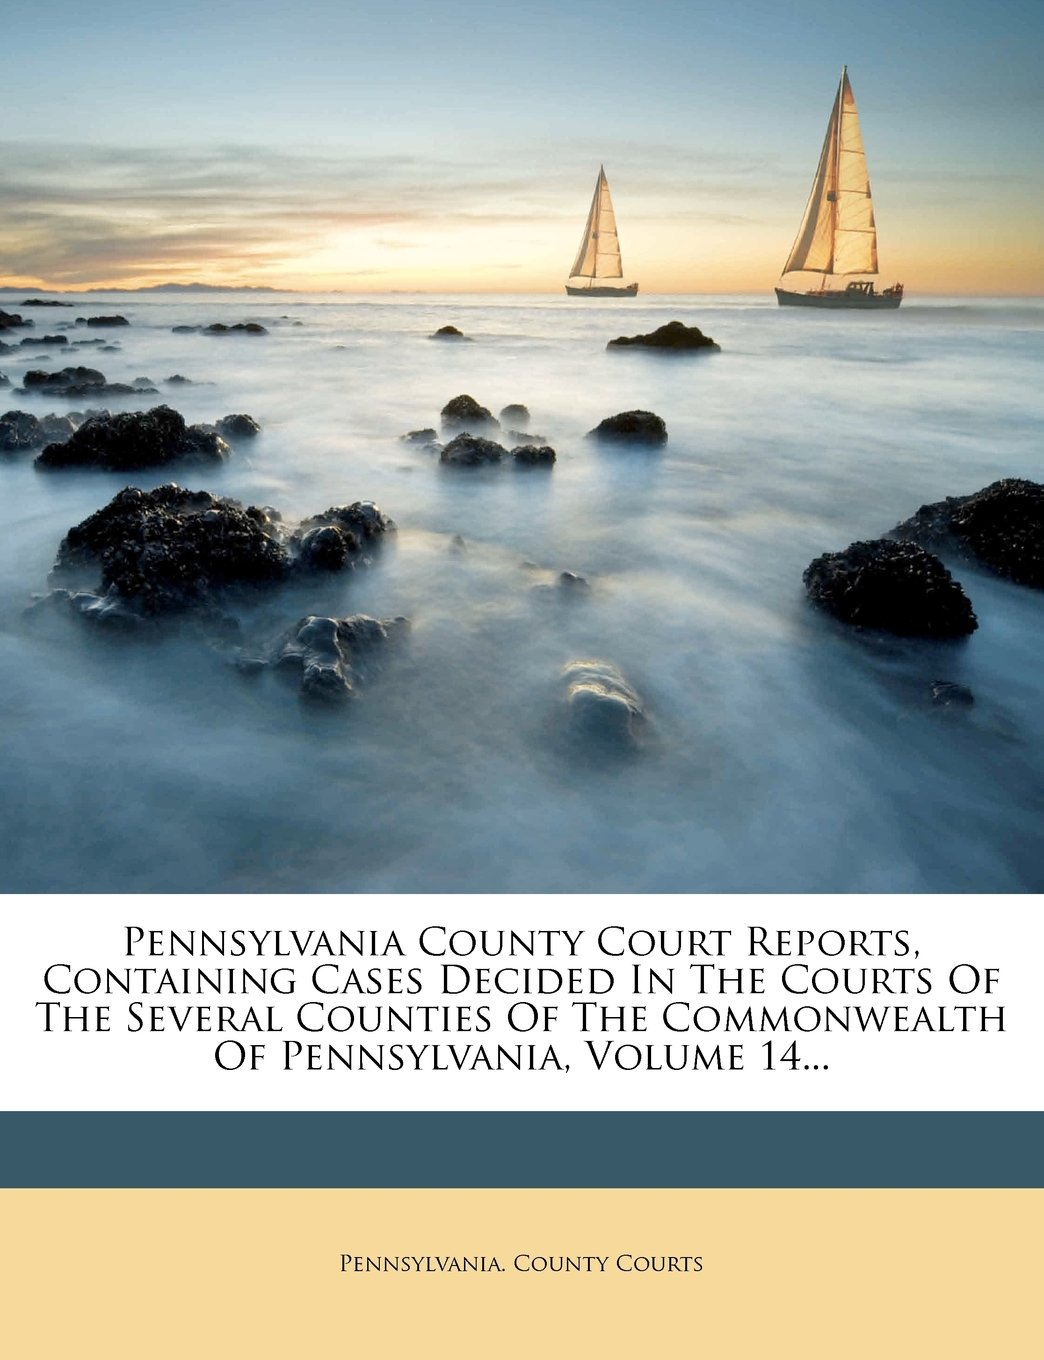 Download Pennsylvania County Court Reports, Containing Cases Decided in the Courts of the Several Counties of the Commonwealth of Pennsylvania, Volume 14... pdf